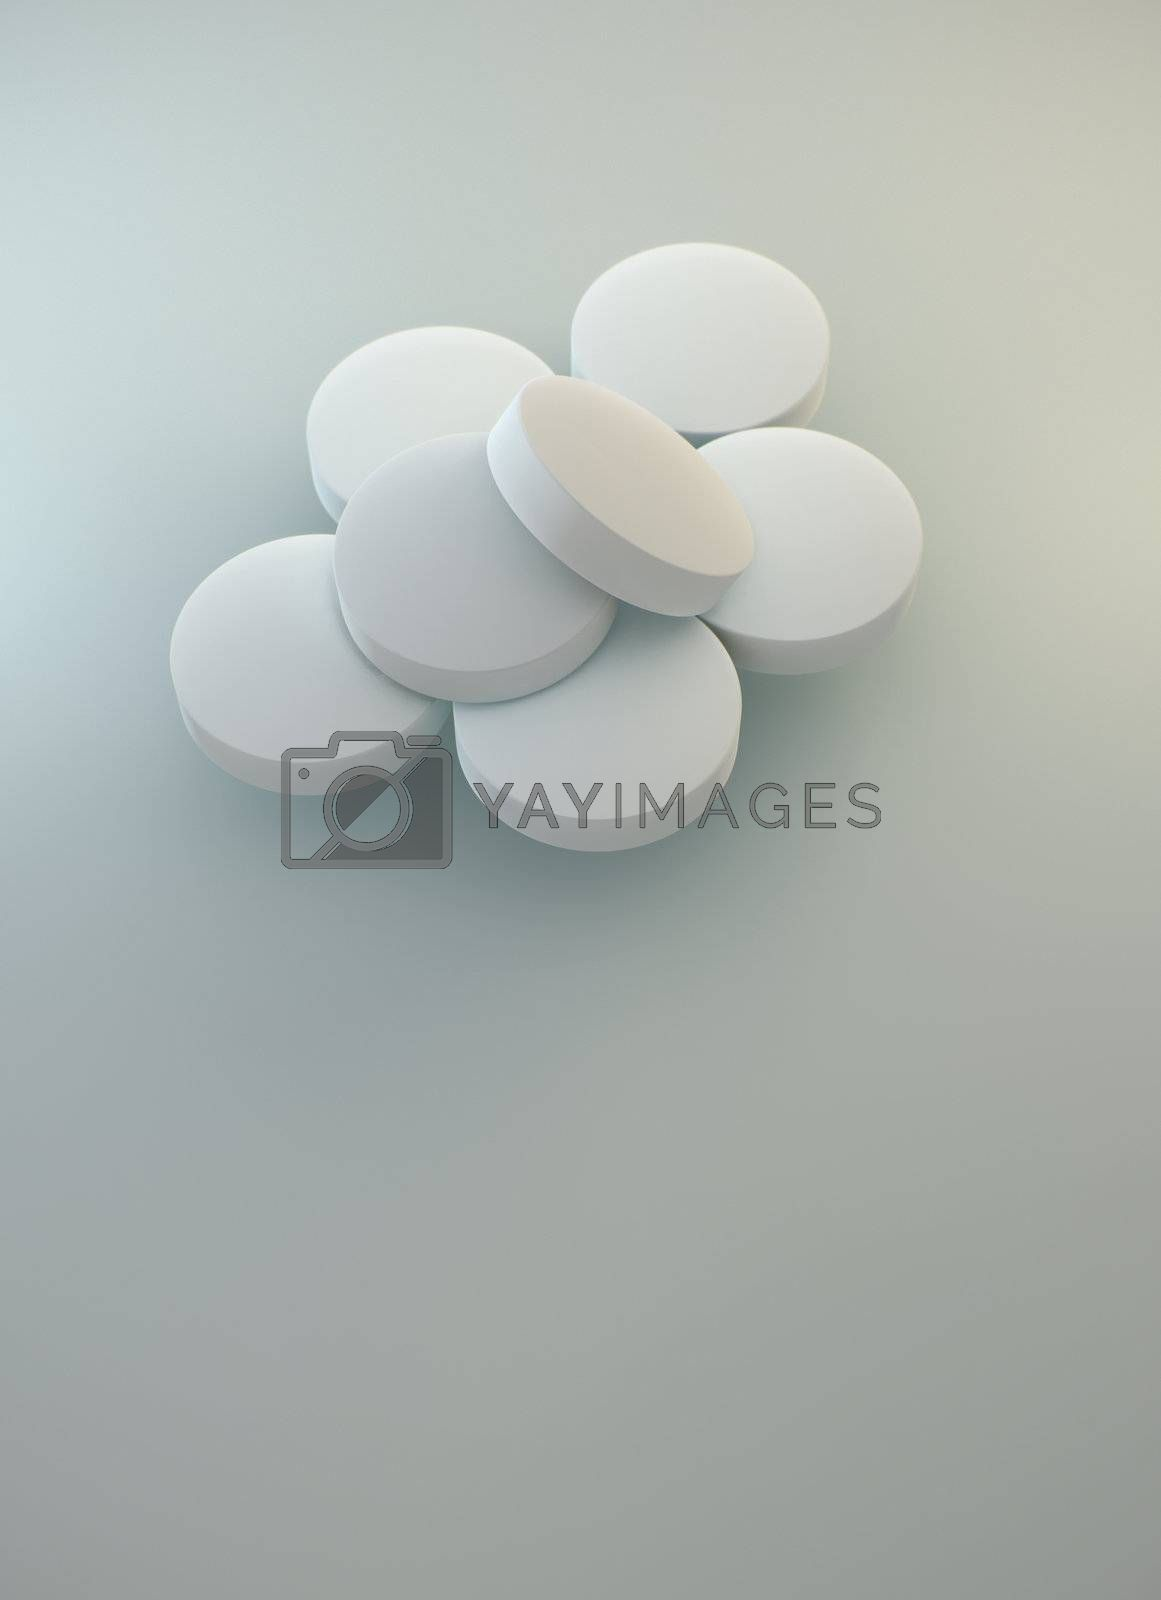 Few pharmaceutical white tablets on neutral background with soft shadows. 3D rendering realistic illustration.